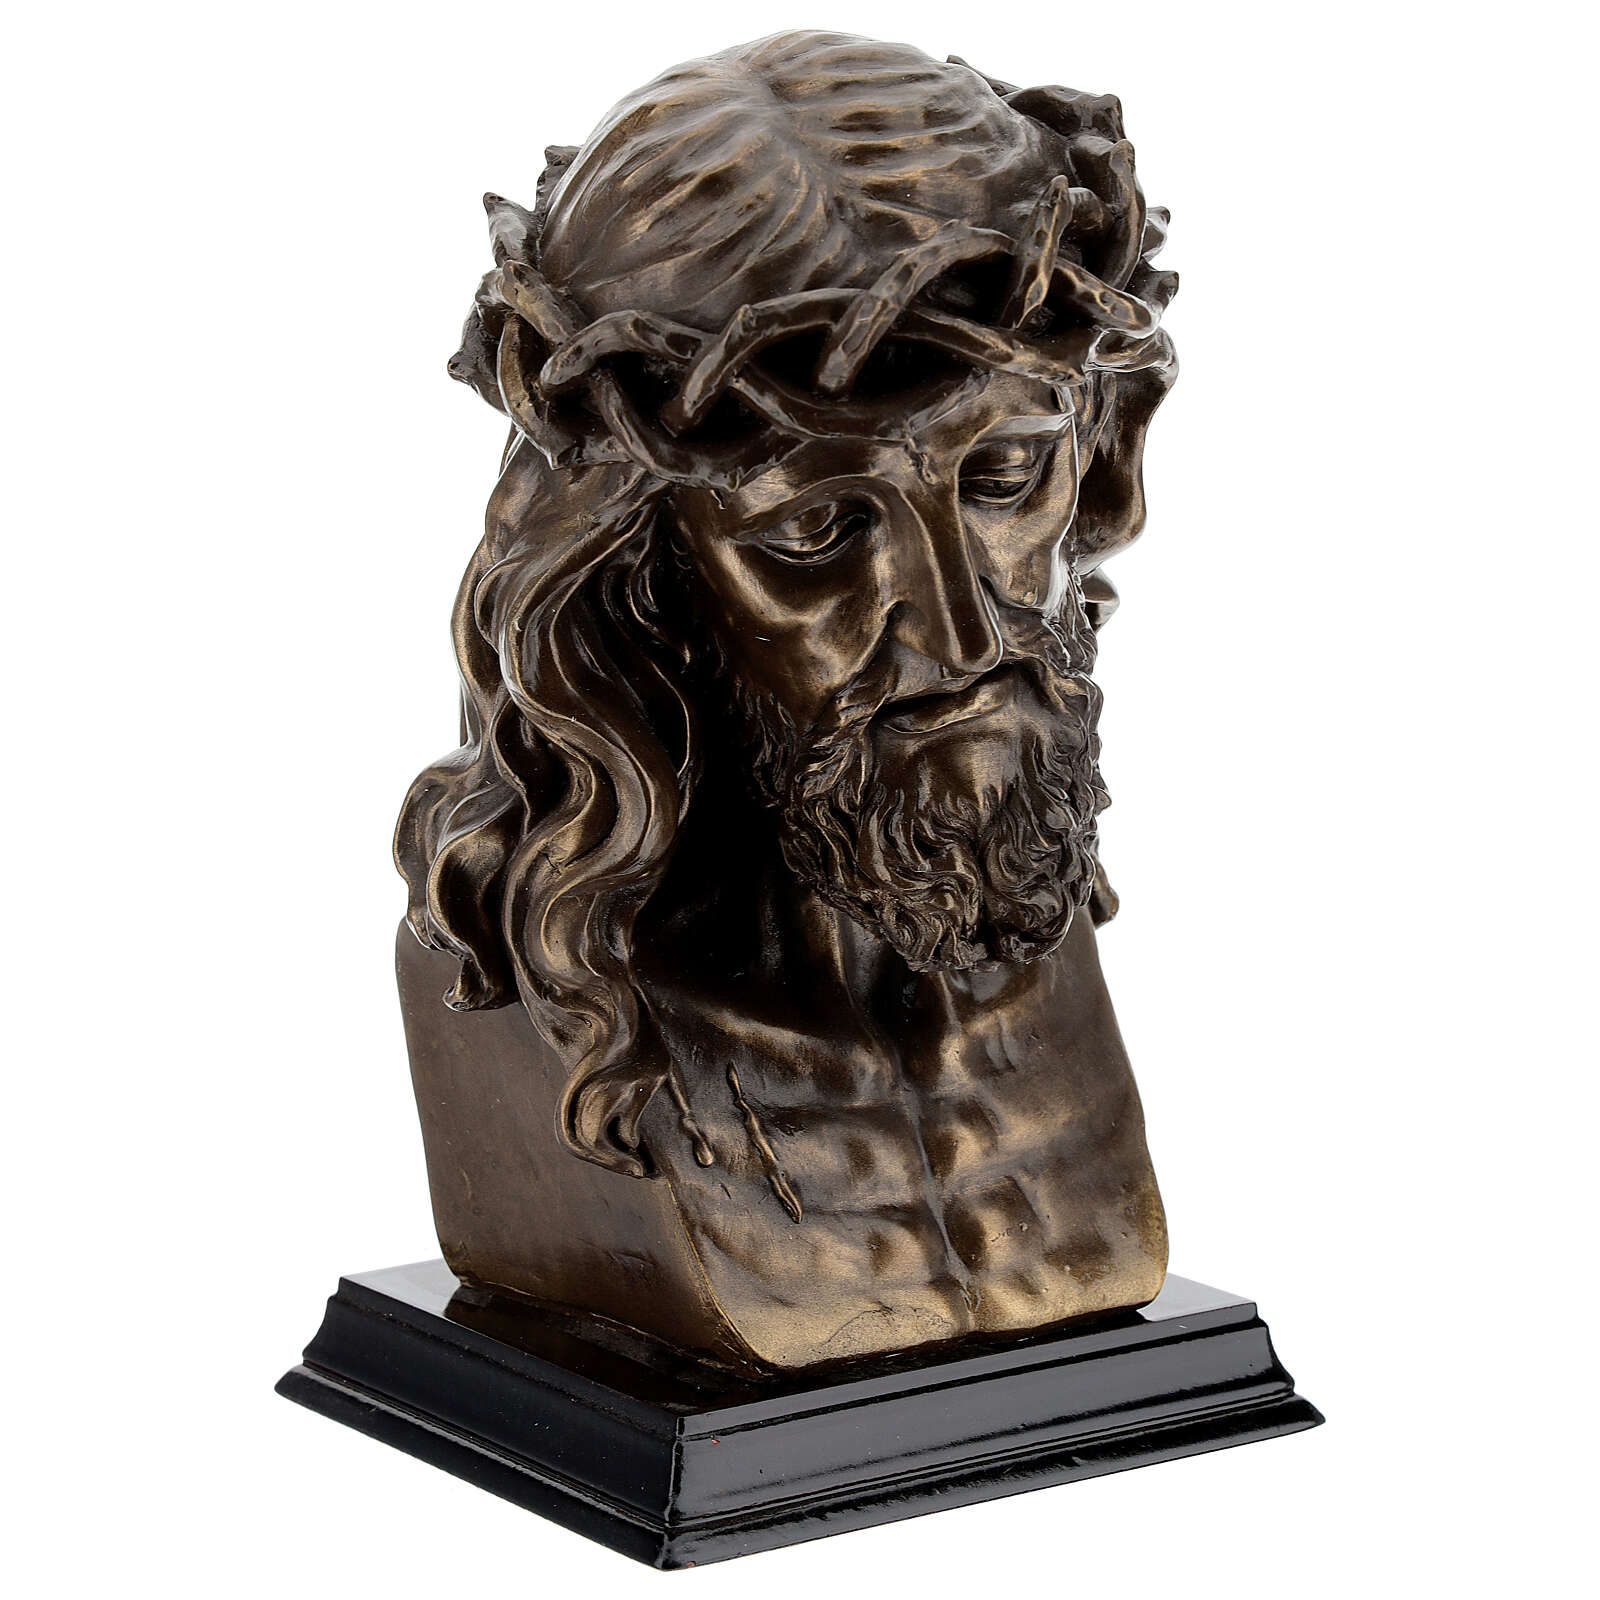 Crucified Jesus Bust with thorn crown, bronzed resin 20x15 cm 4